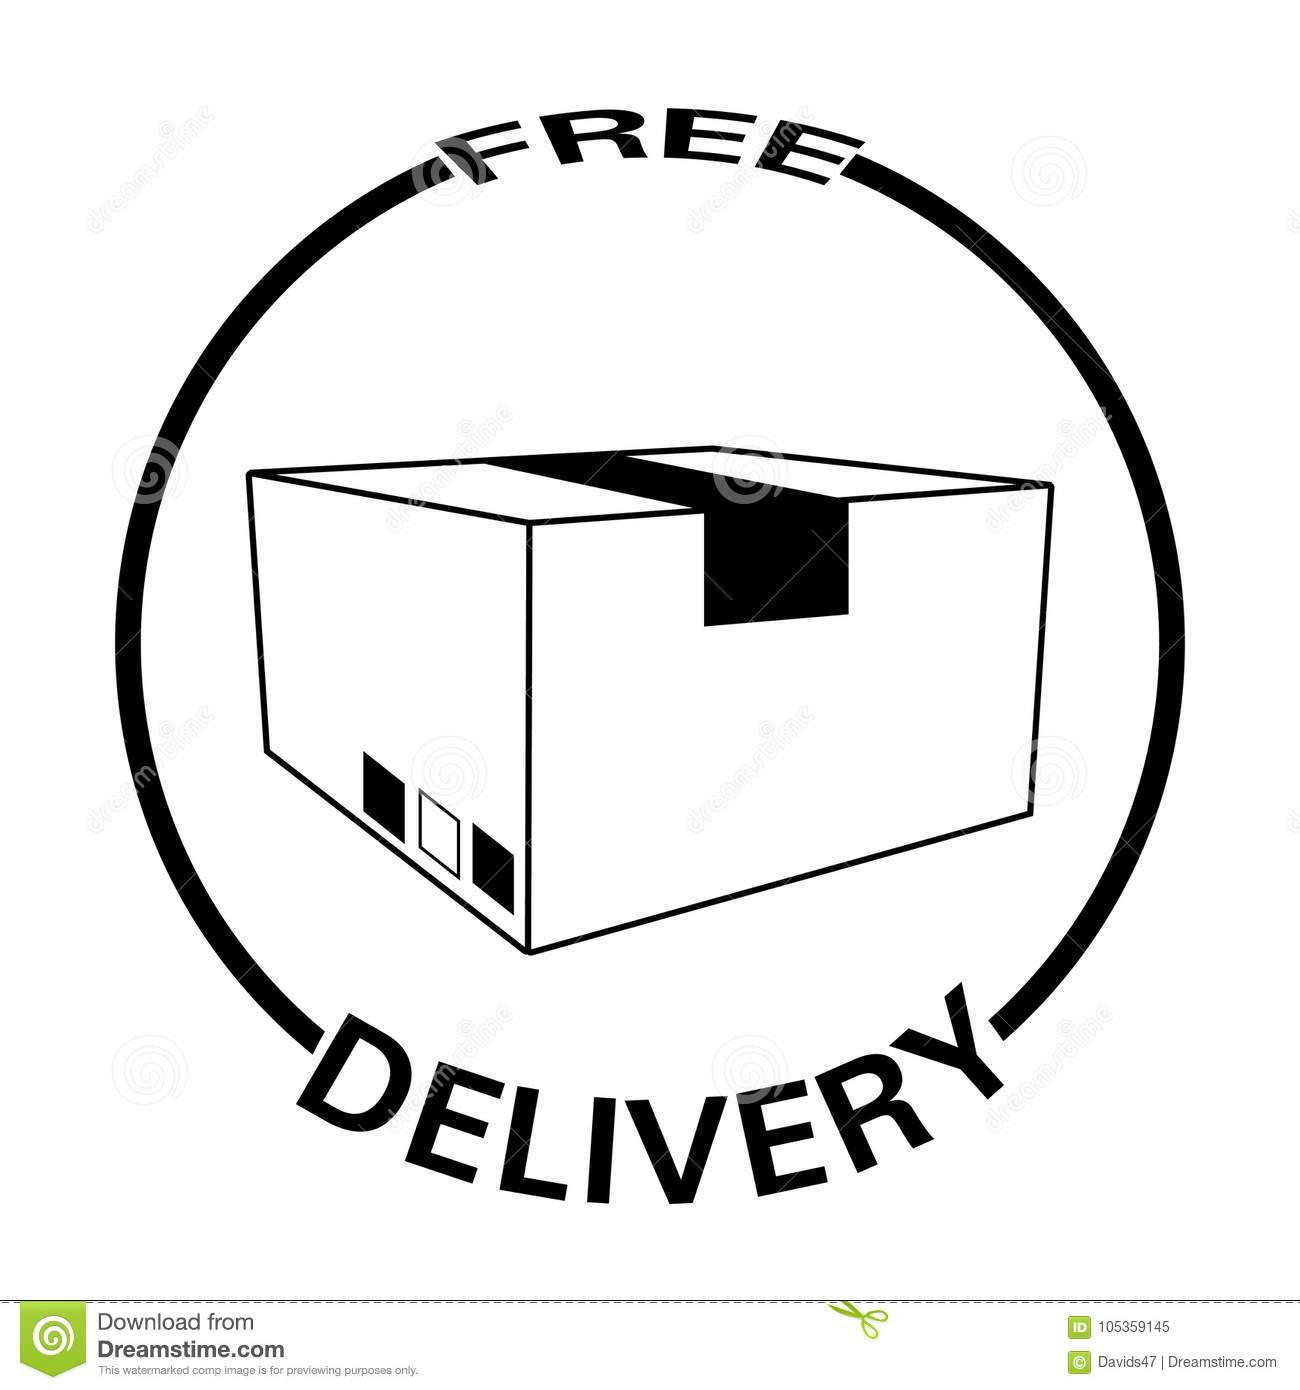 Free Delivery Object Stock Vector Illustration Of Free